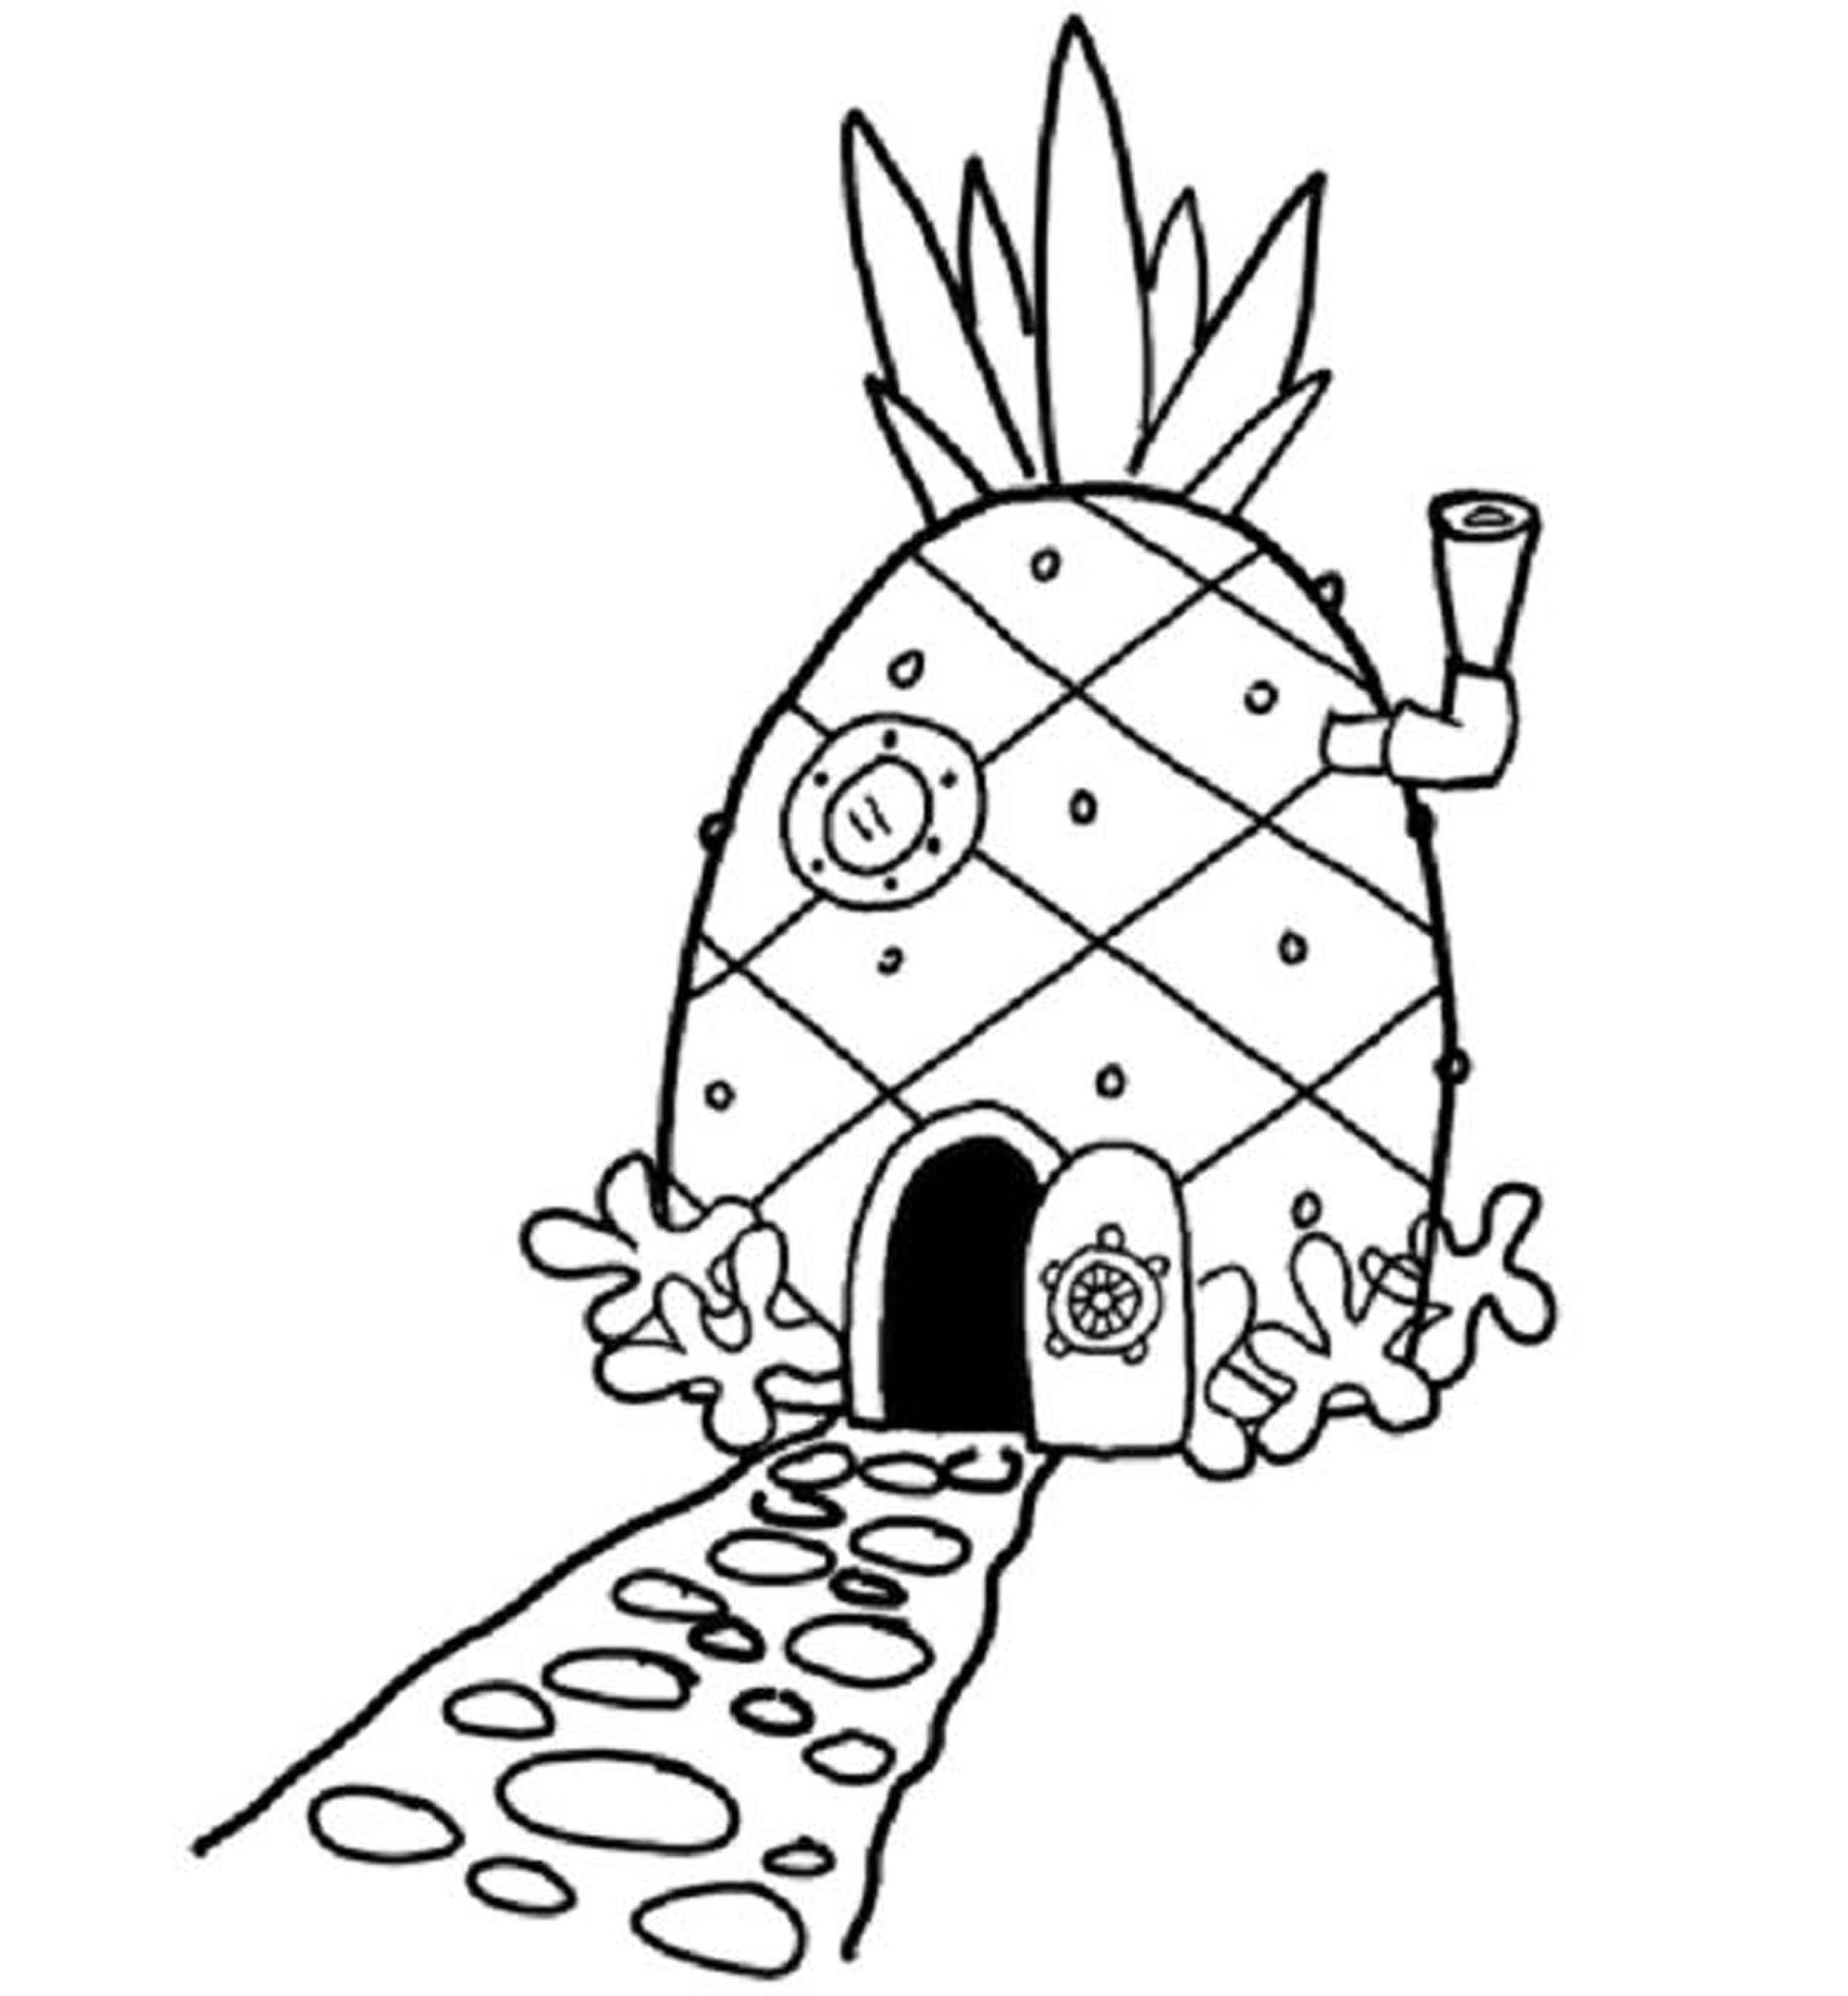 Spongebob House Coloring Page